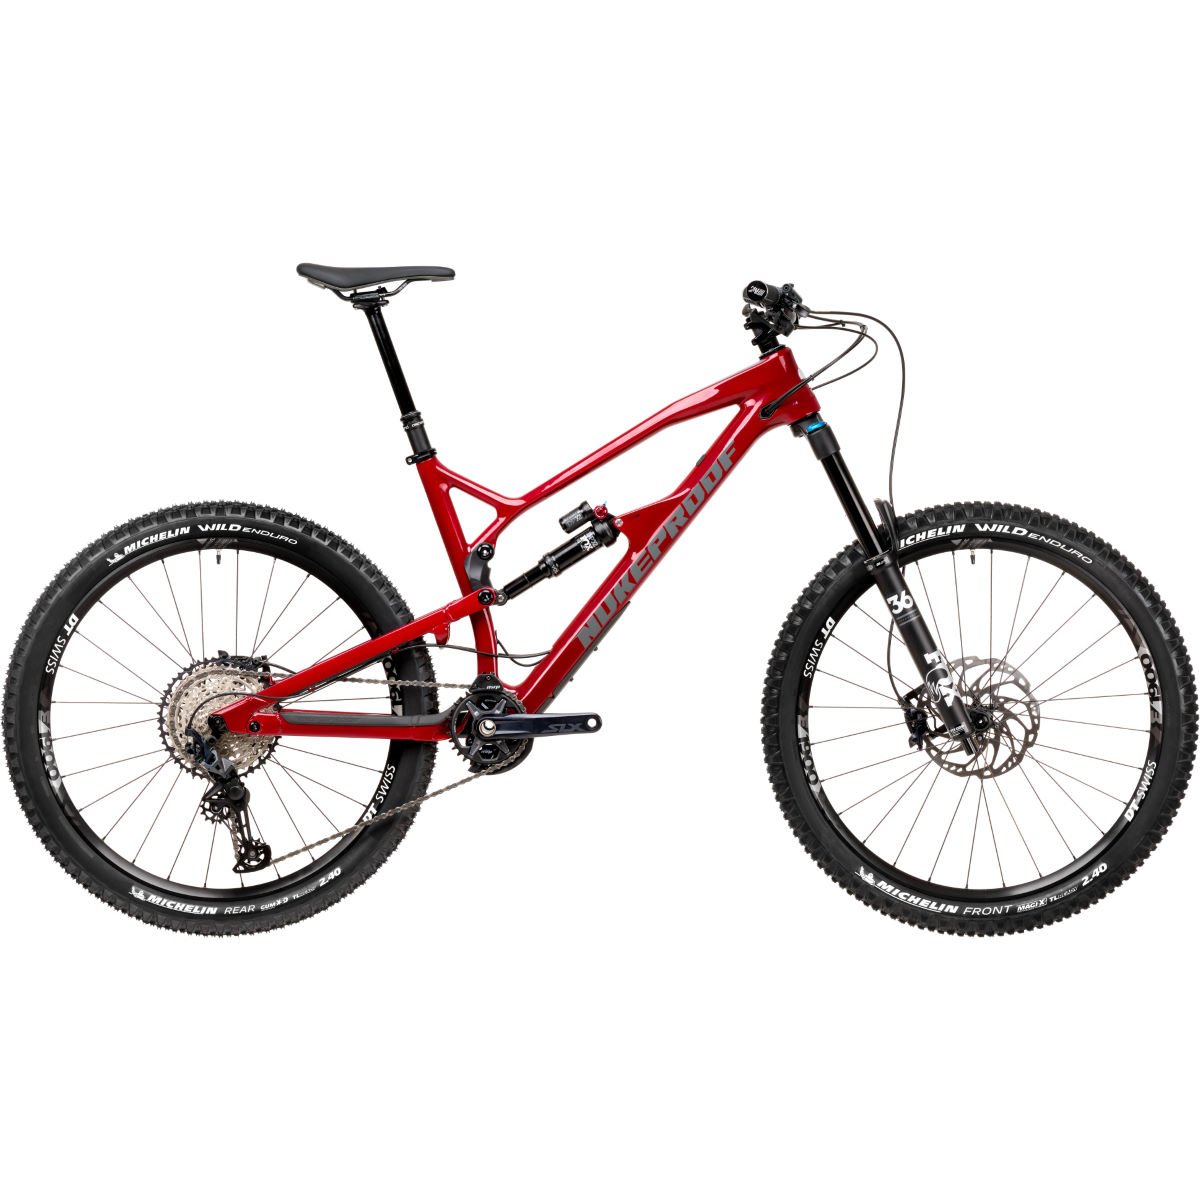 Nukeproof Nukeproof Mega 275 Elite Carbon Bike (SLX - 2020)   Full Suspension Mountain Bikes